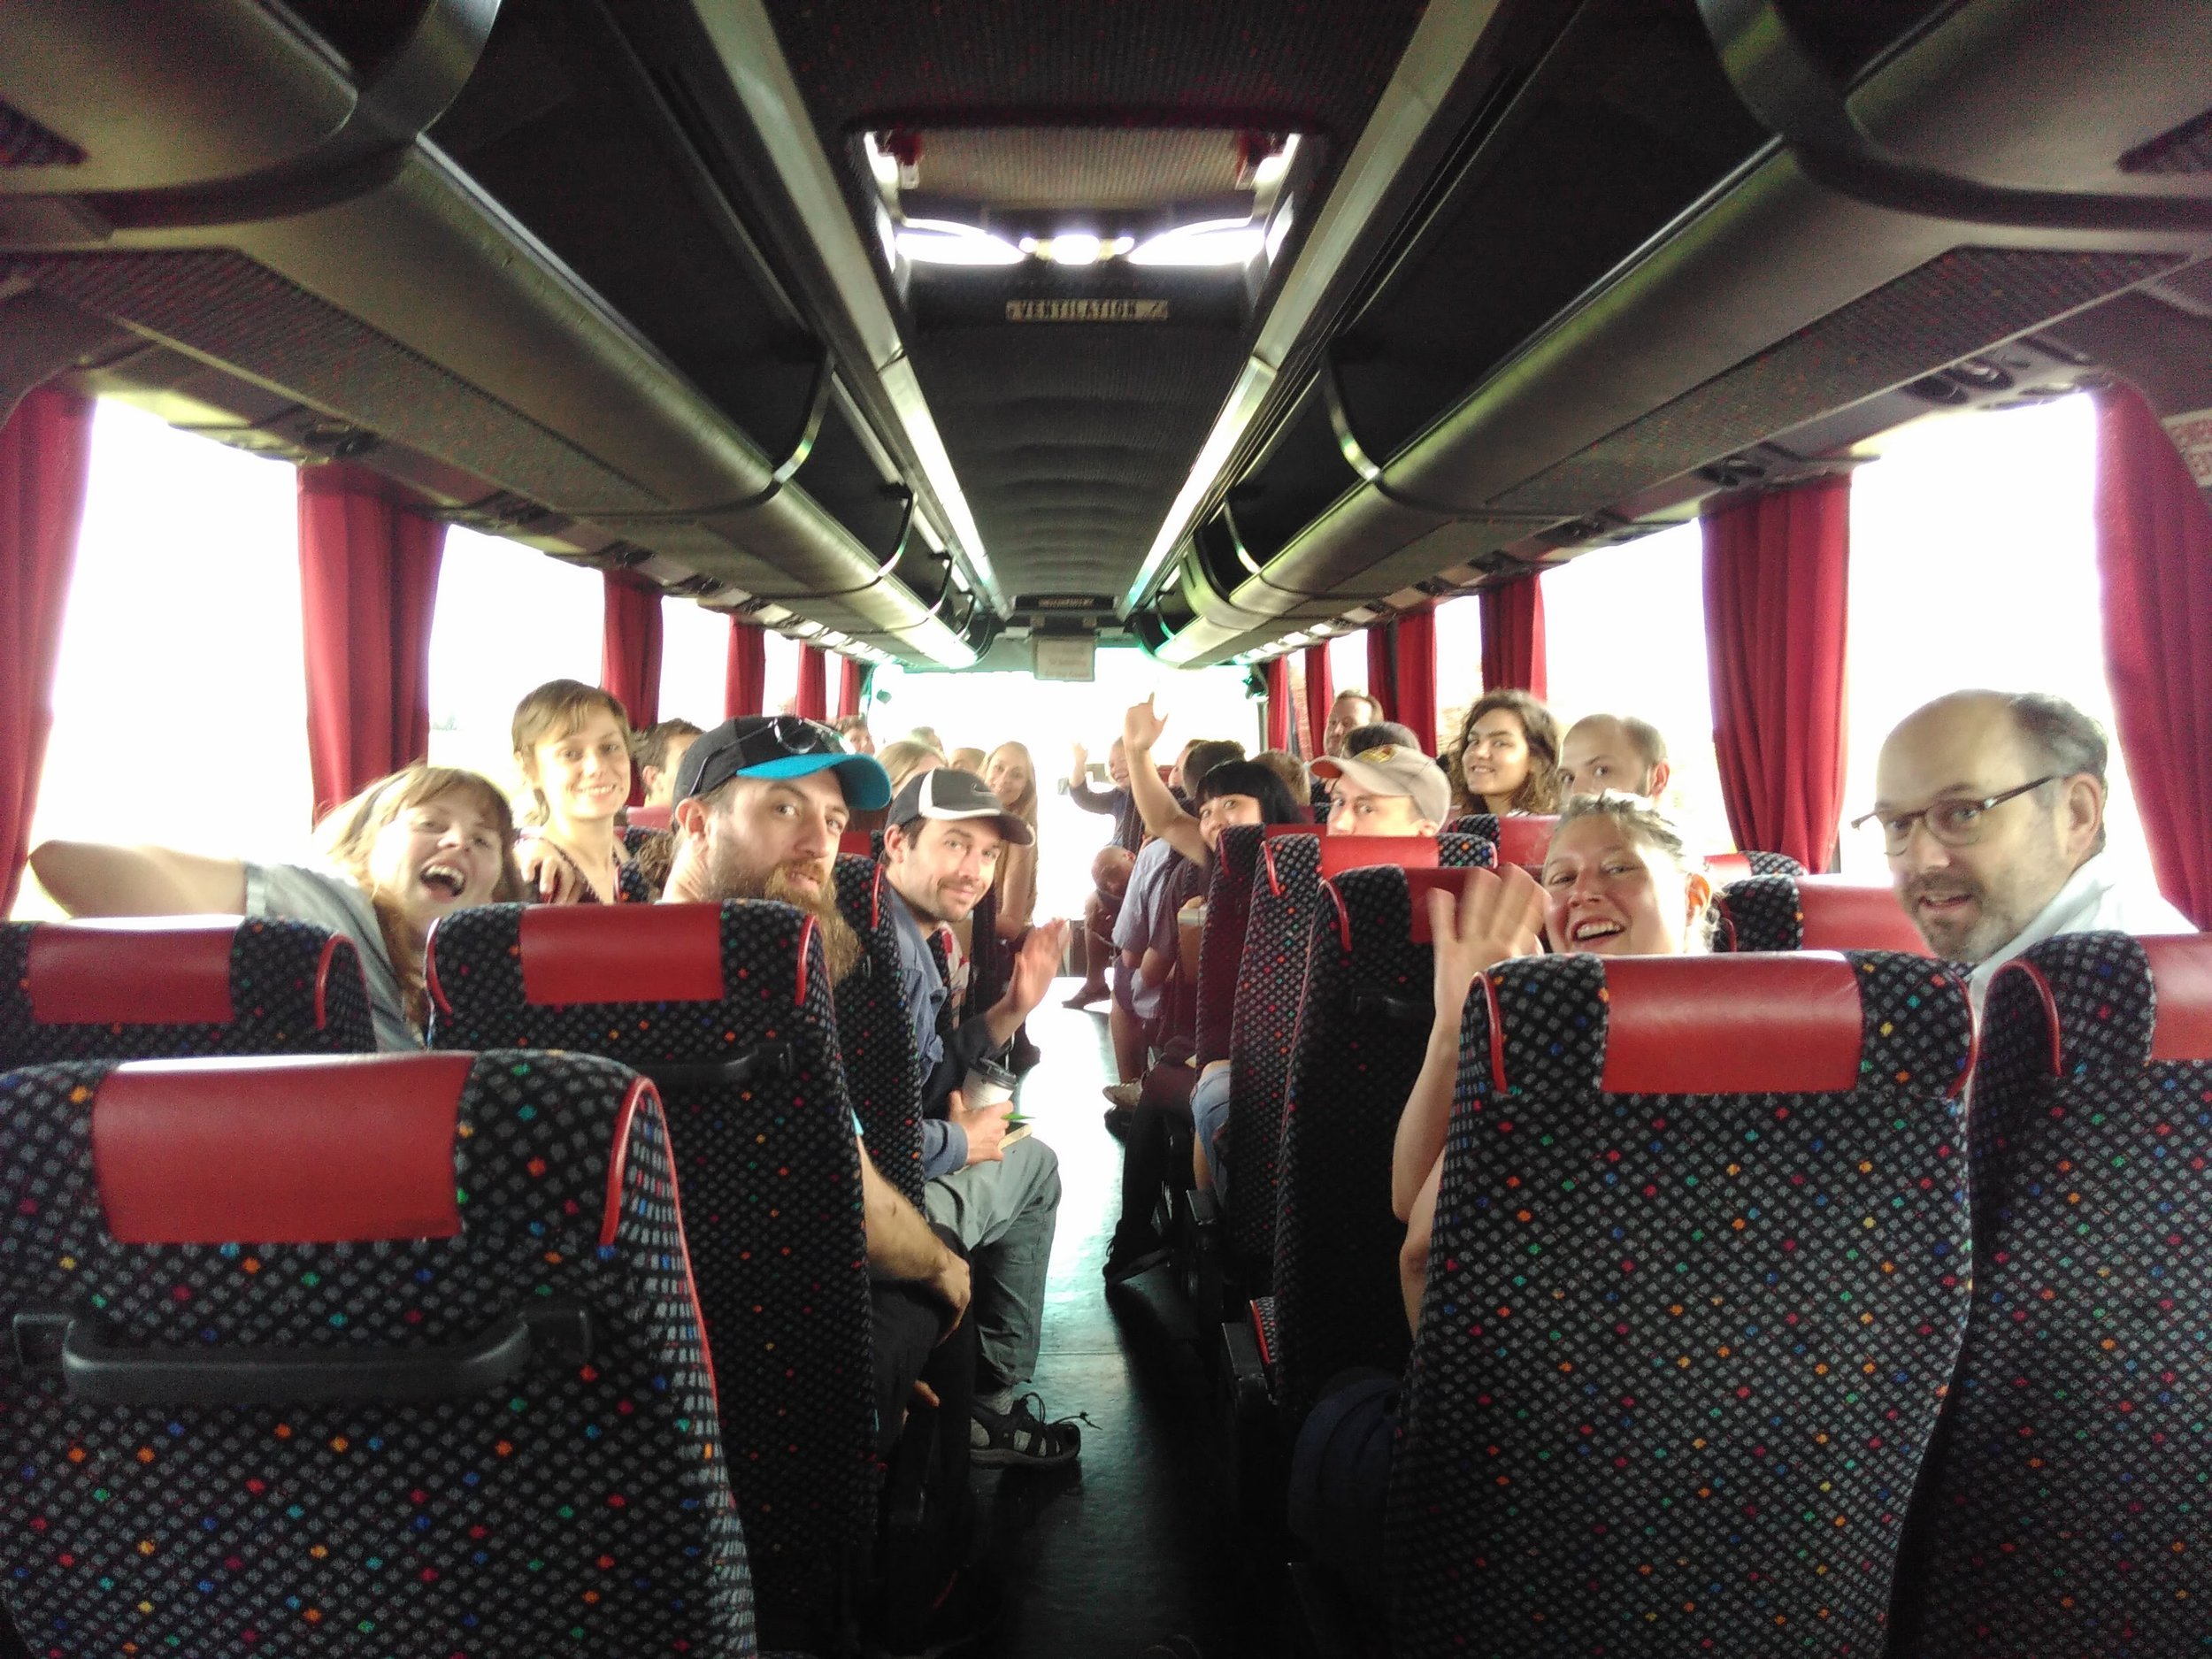 Coach trip from Norwich to Great Yarmouth. Image: originalprojects;